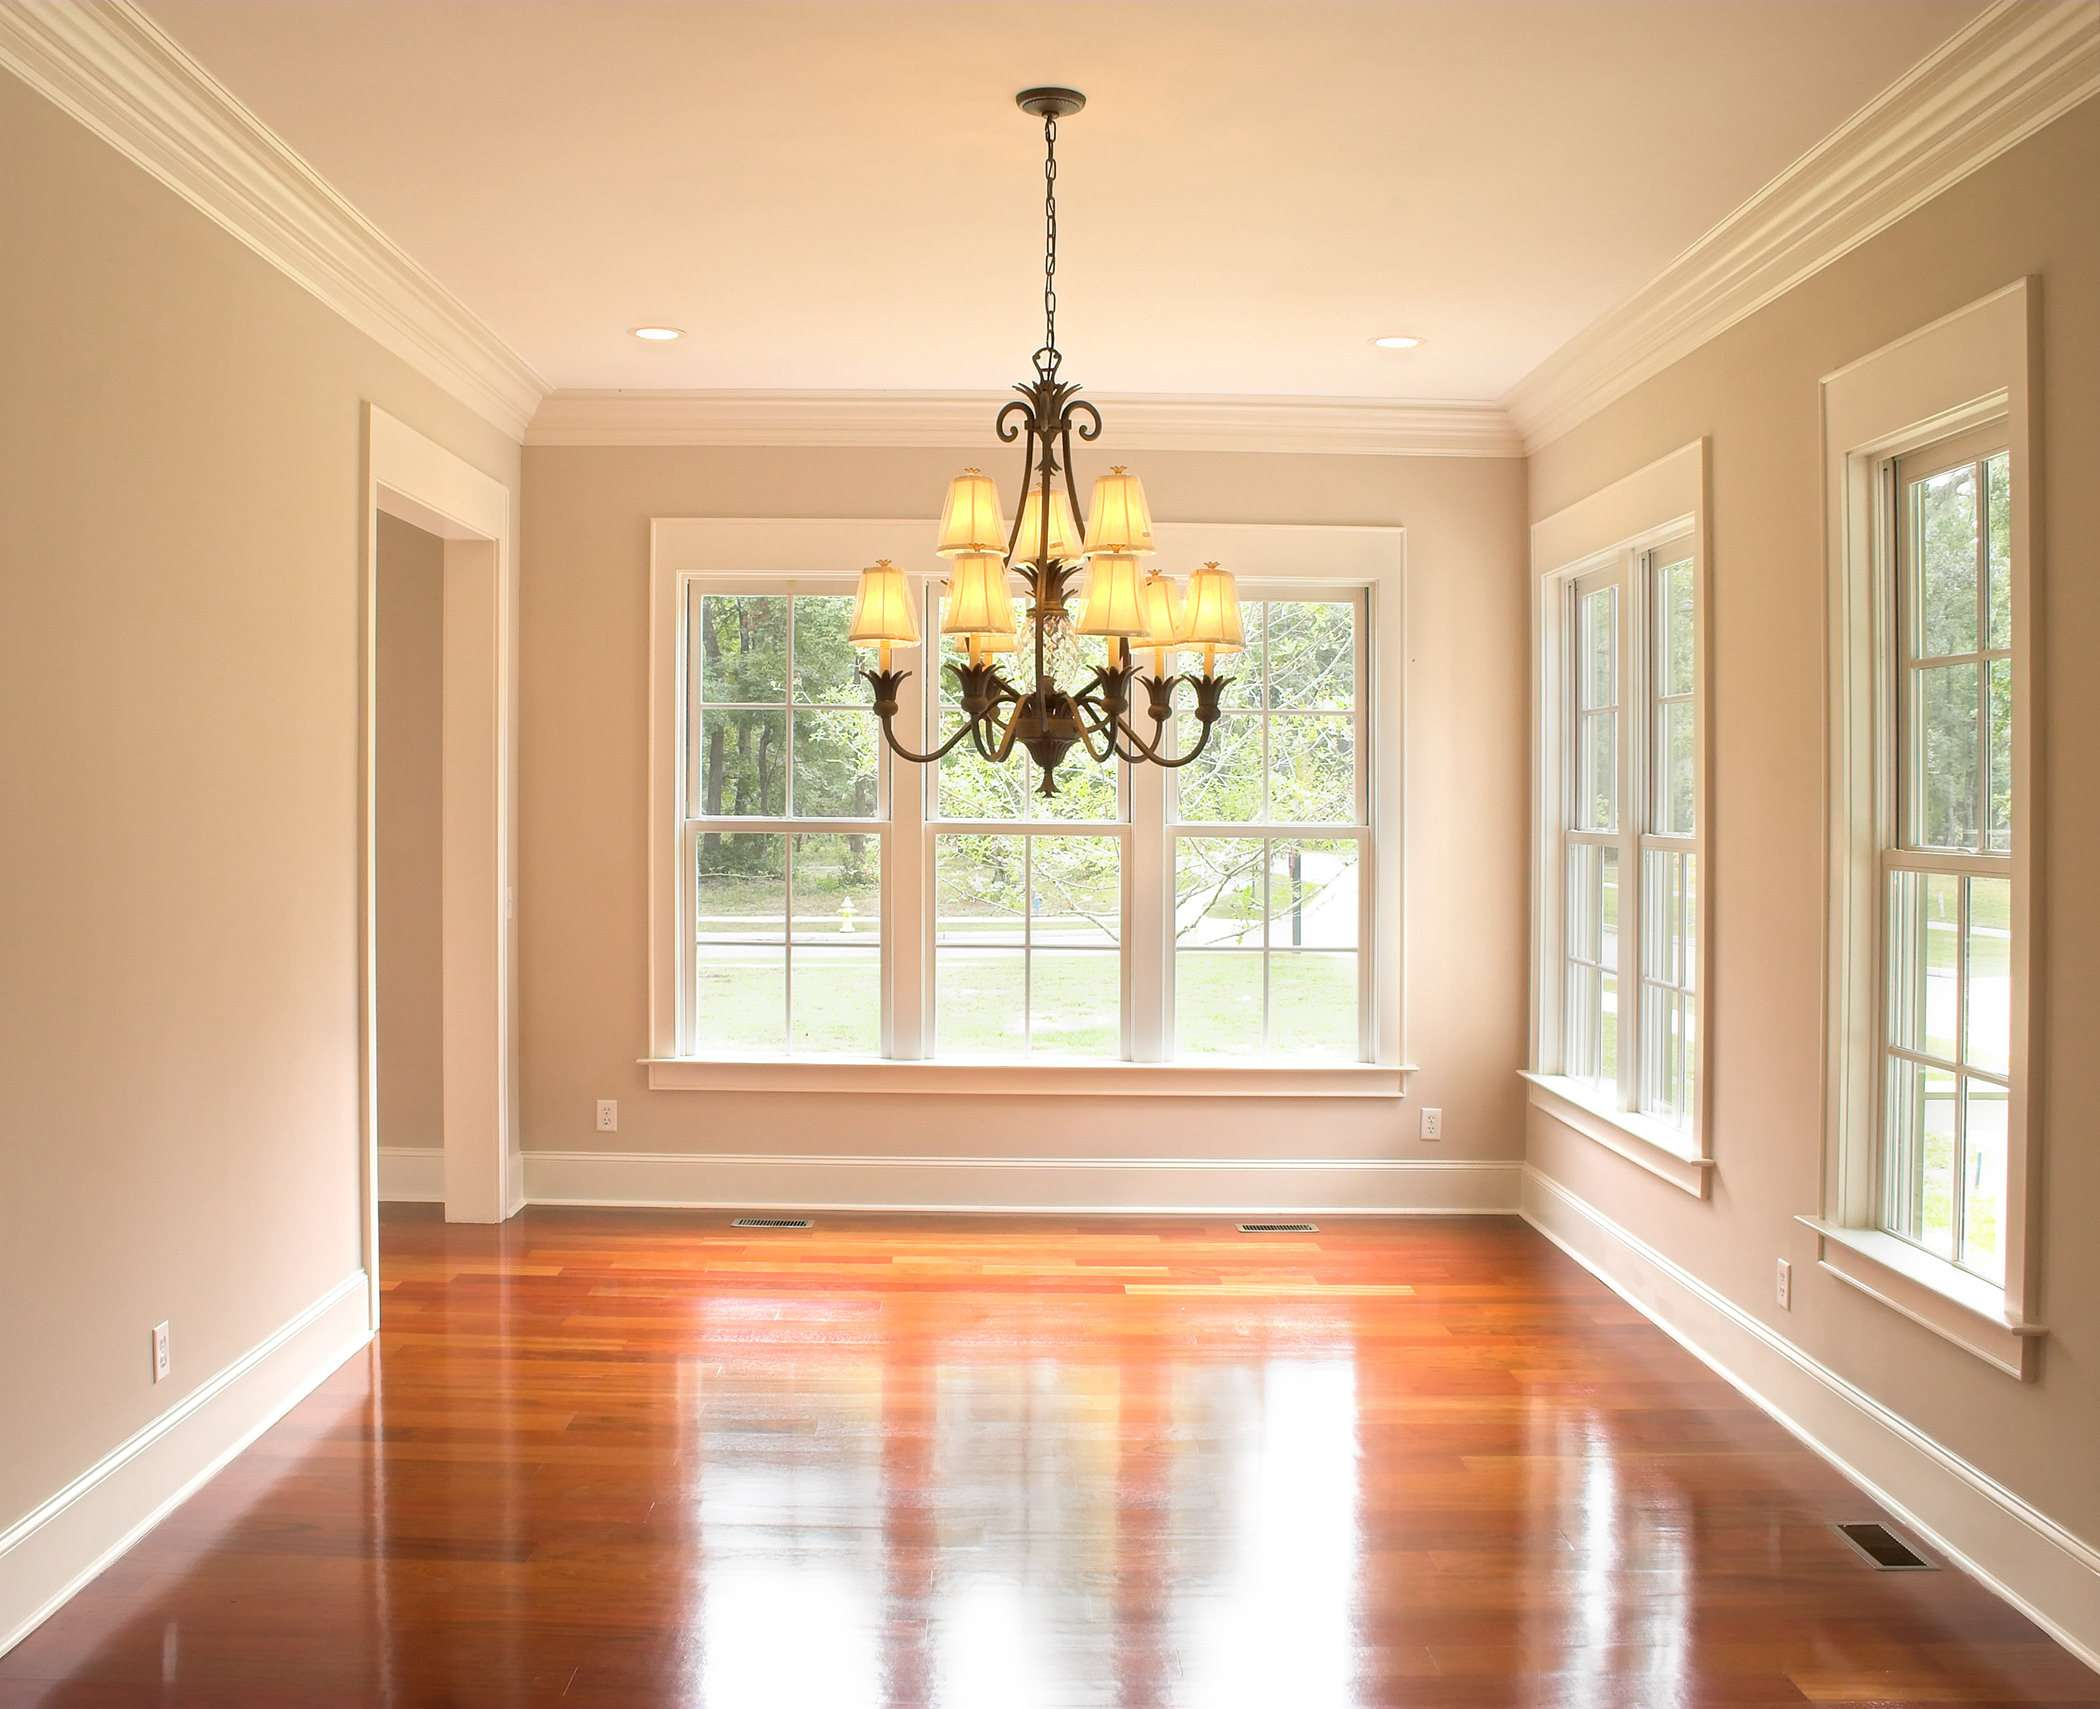 Bright hallway with a chandelier and white hung windows